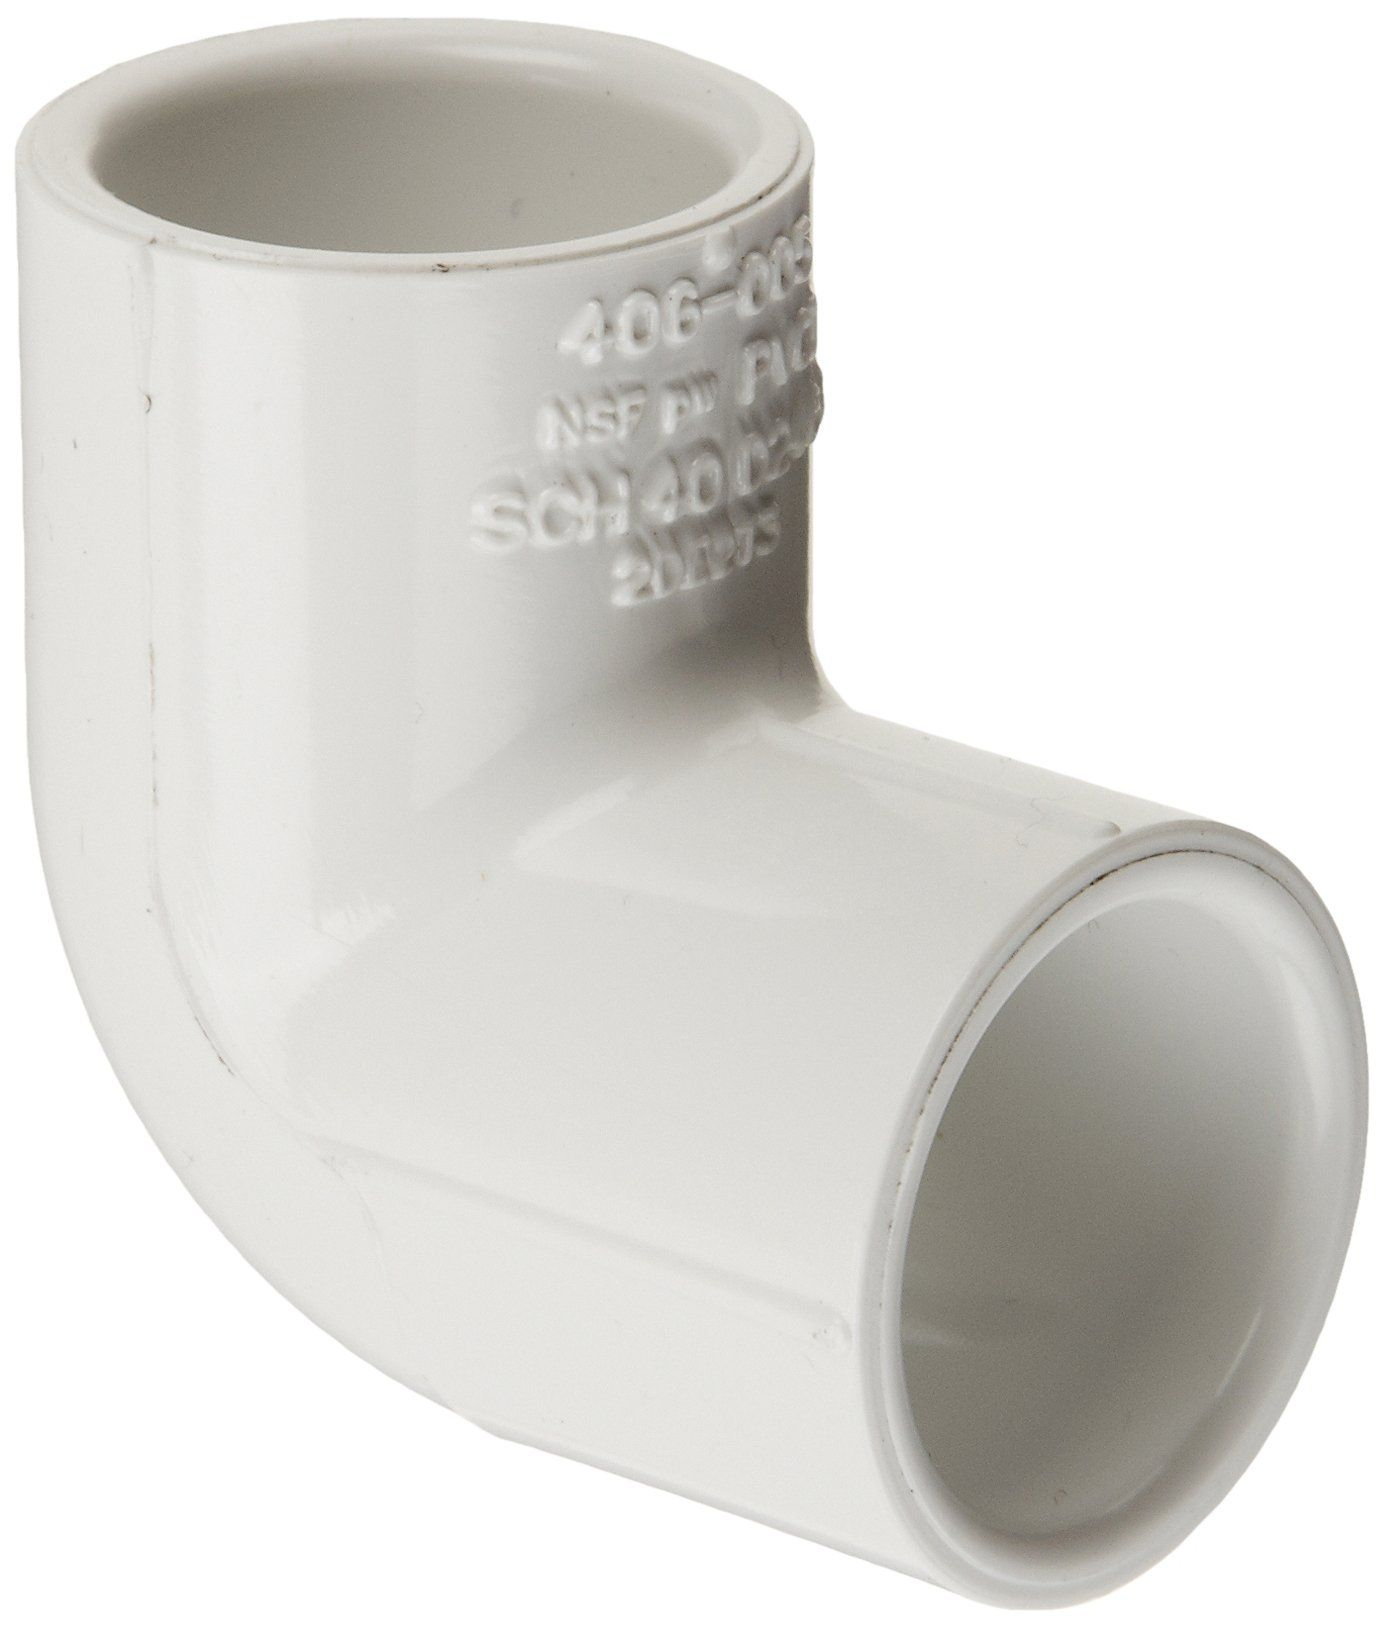 1 1 4 90 Degree Elbow Pvc Fitting Connector Pvc Fittings Pvc Pvc Elbow